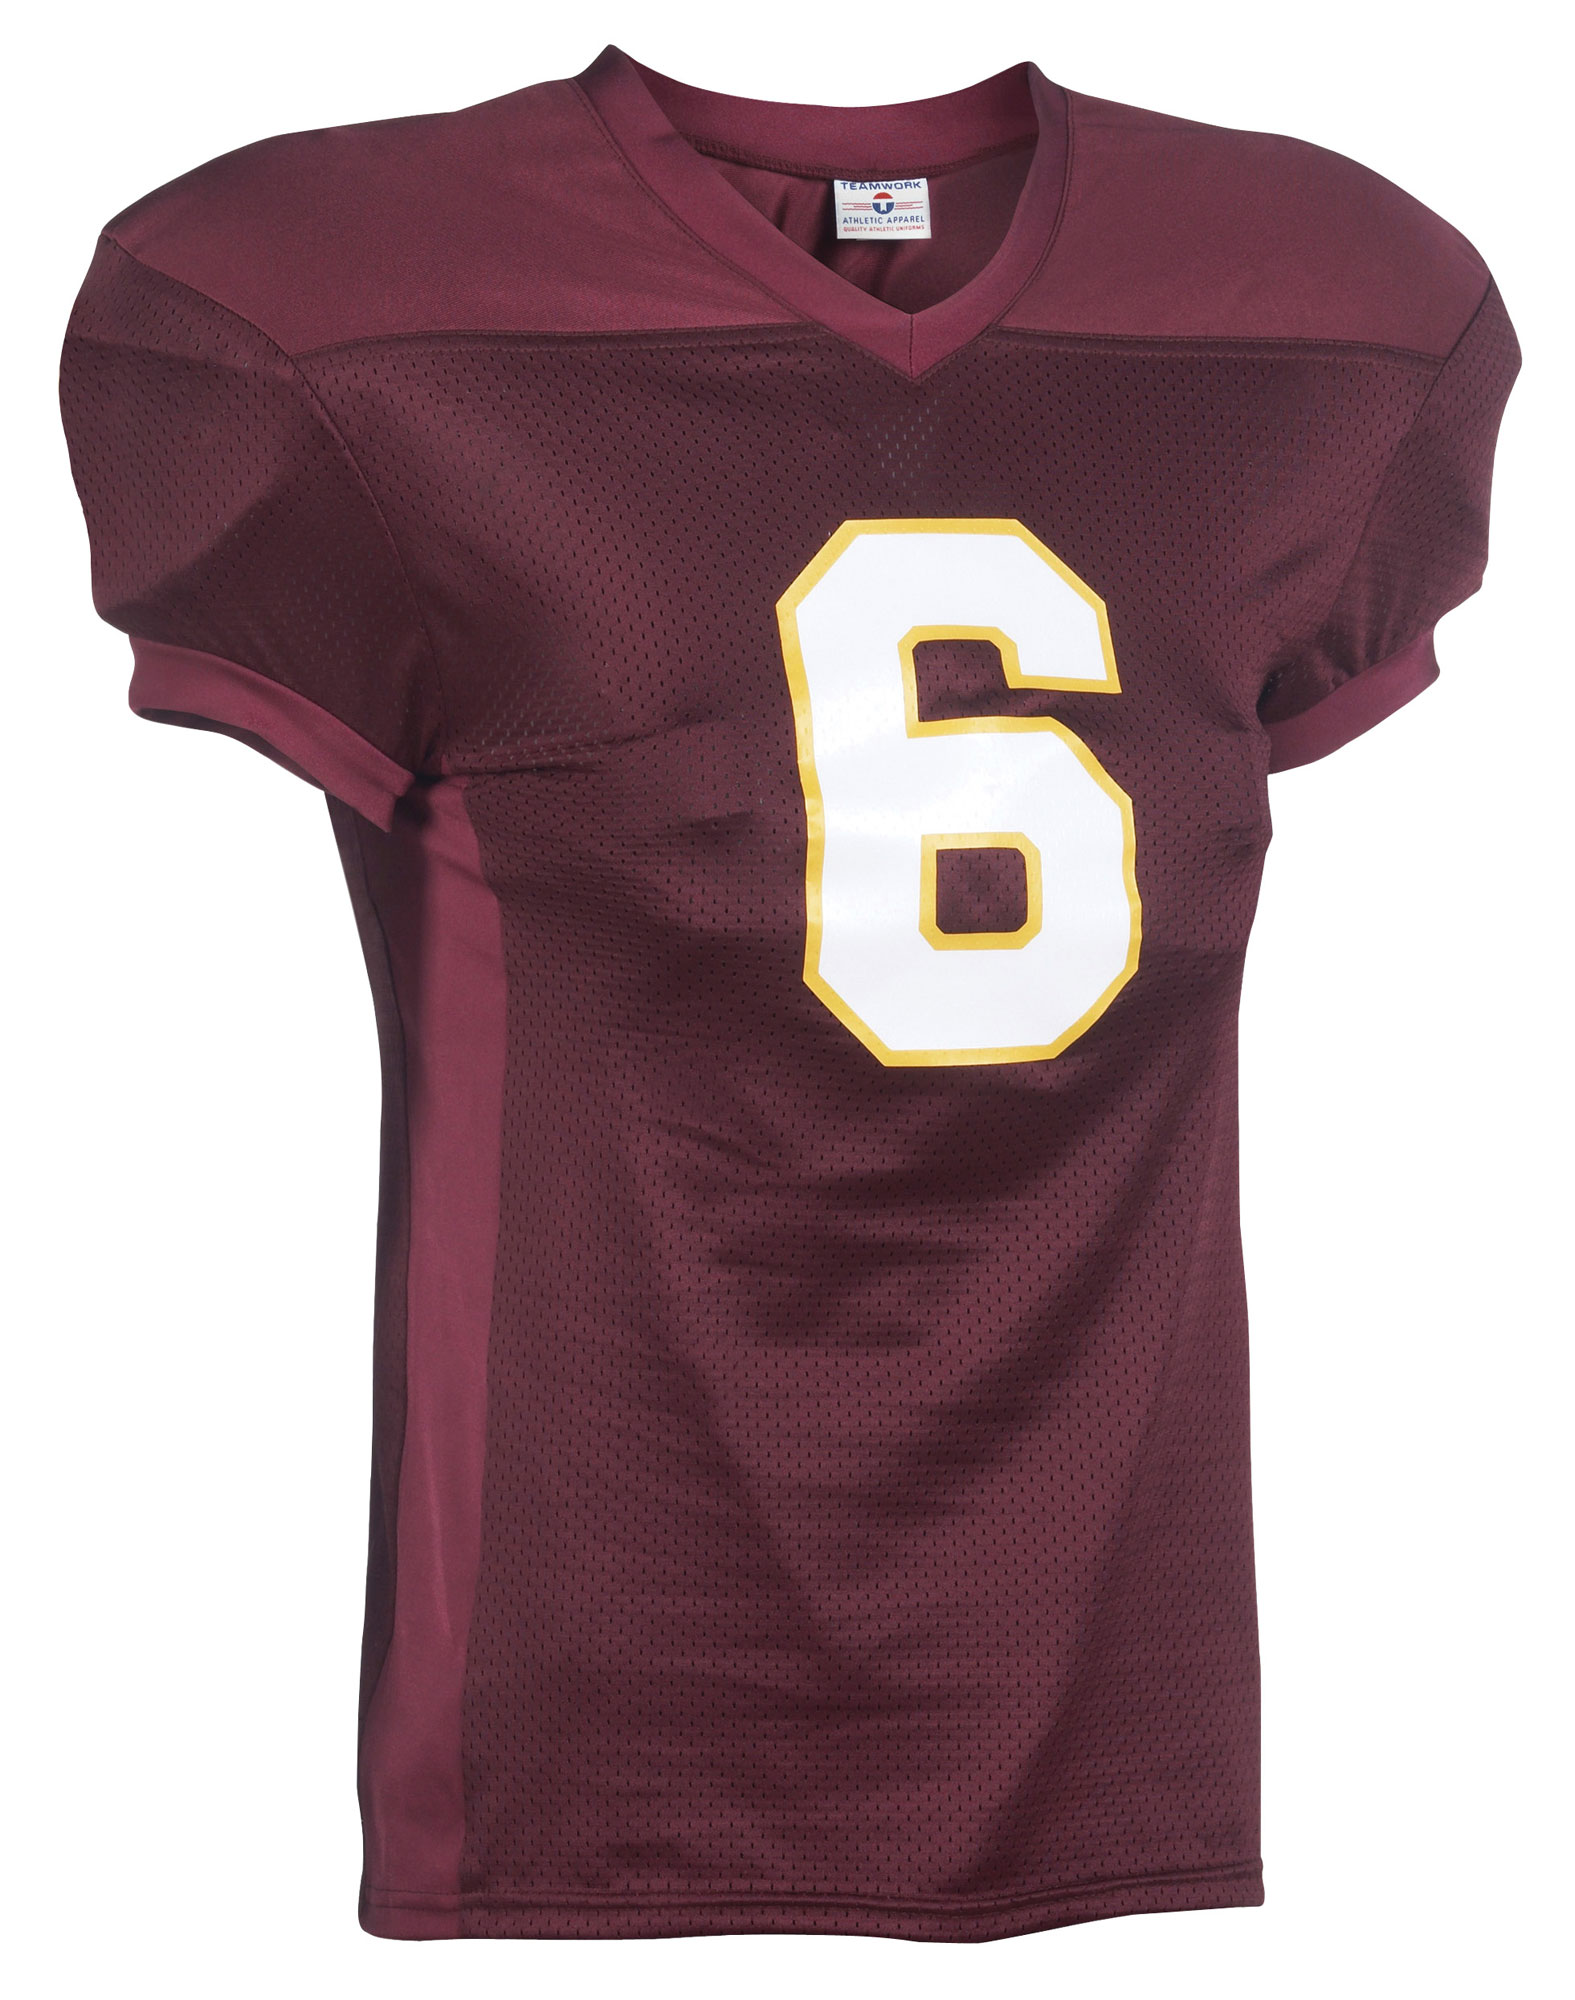 Adult Crunch Time Custom Football Jersey